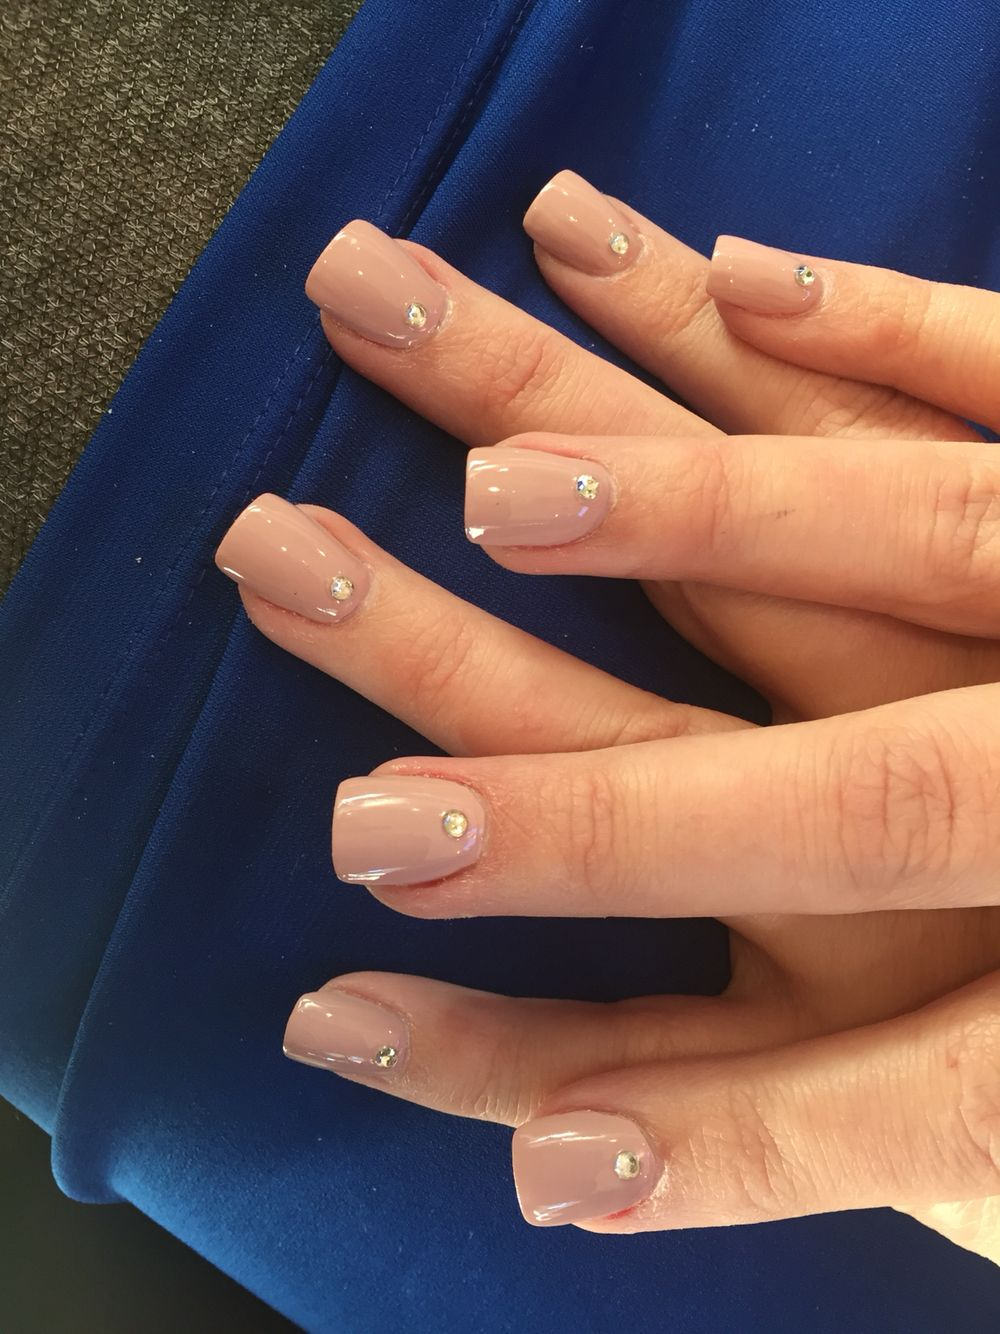 Nude acrylic nails with diamond accent | nails | Pinterest ...